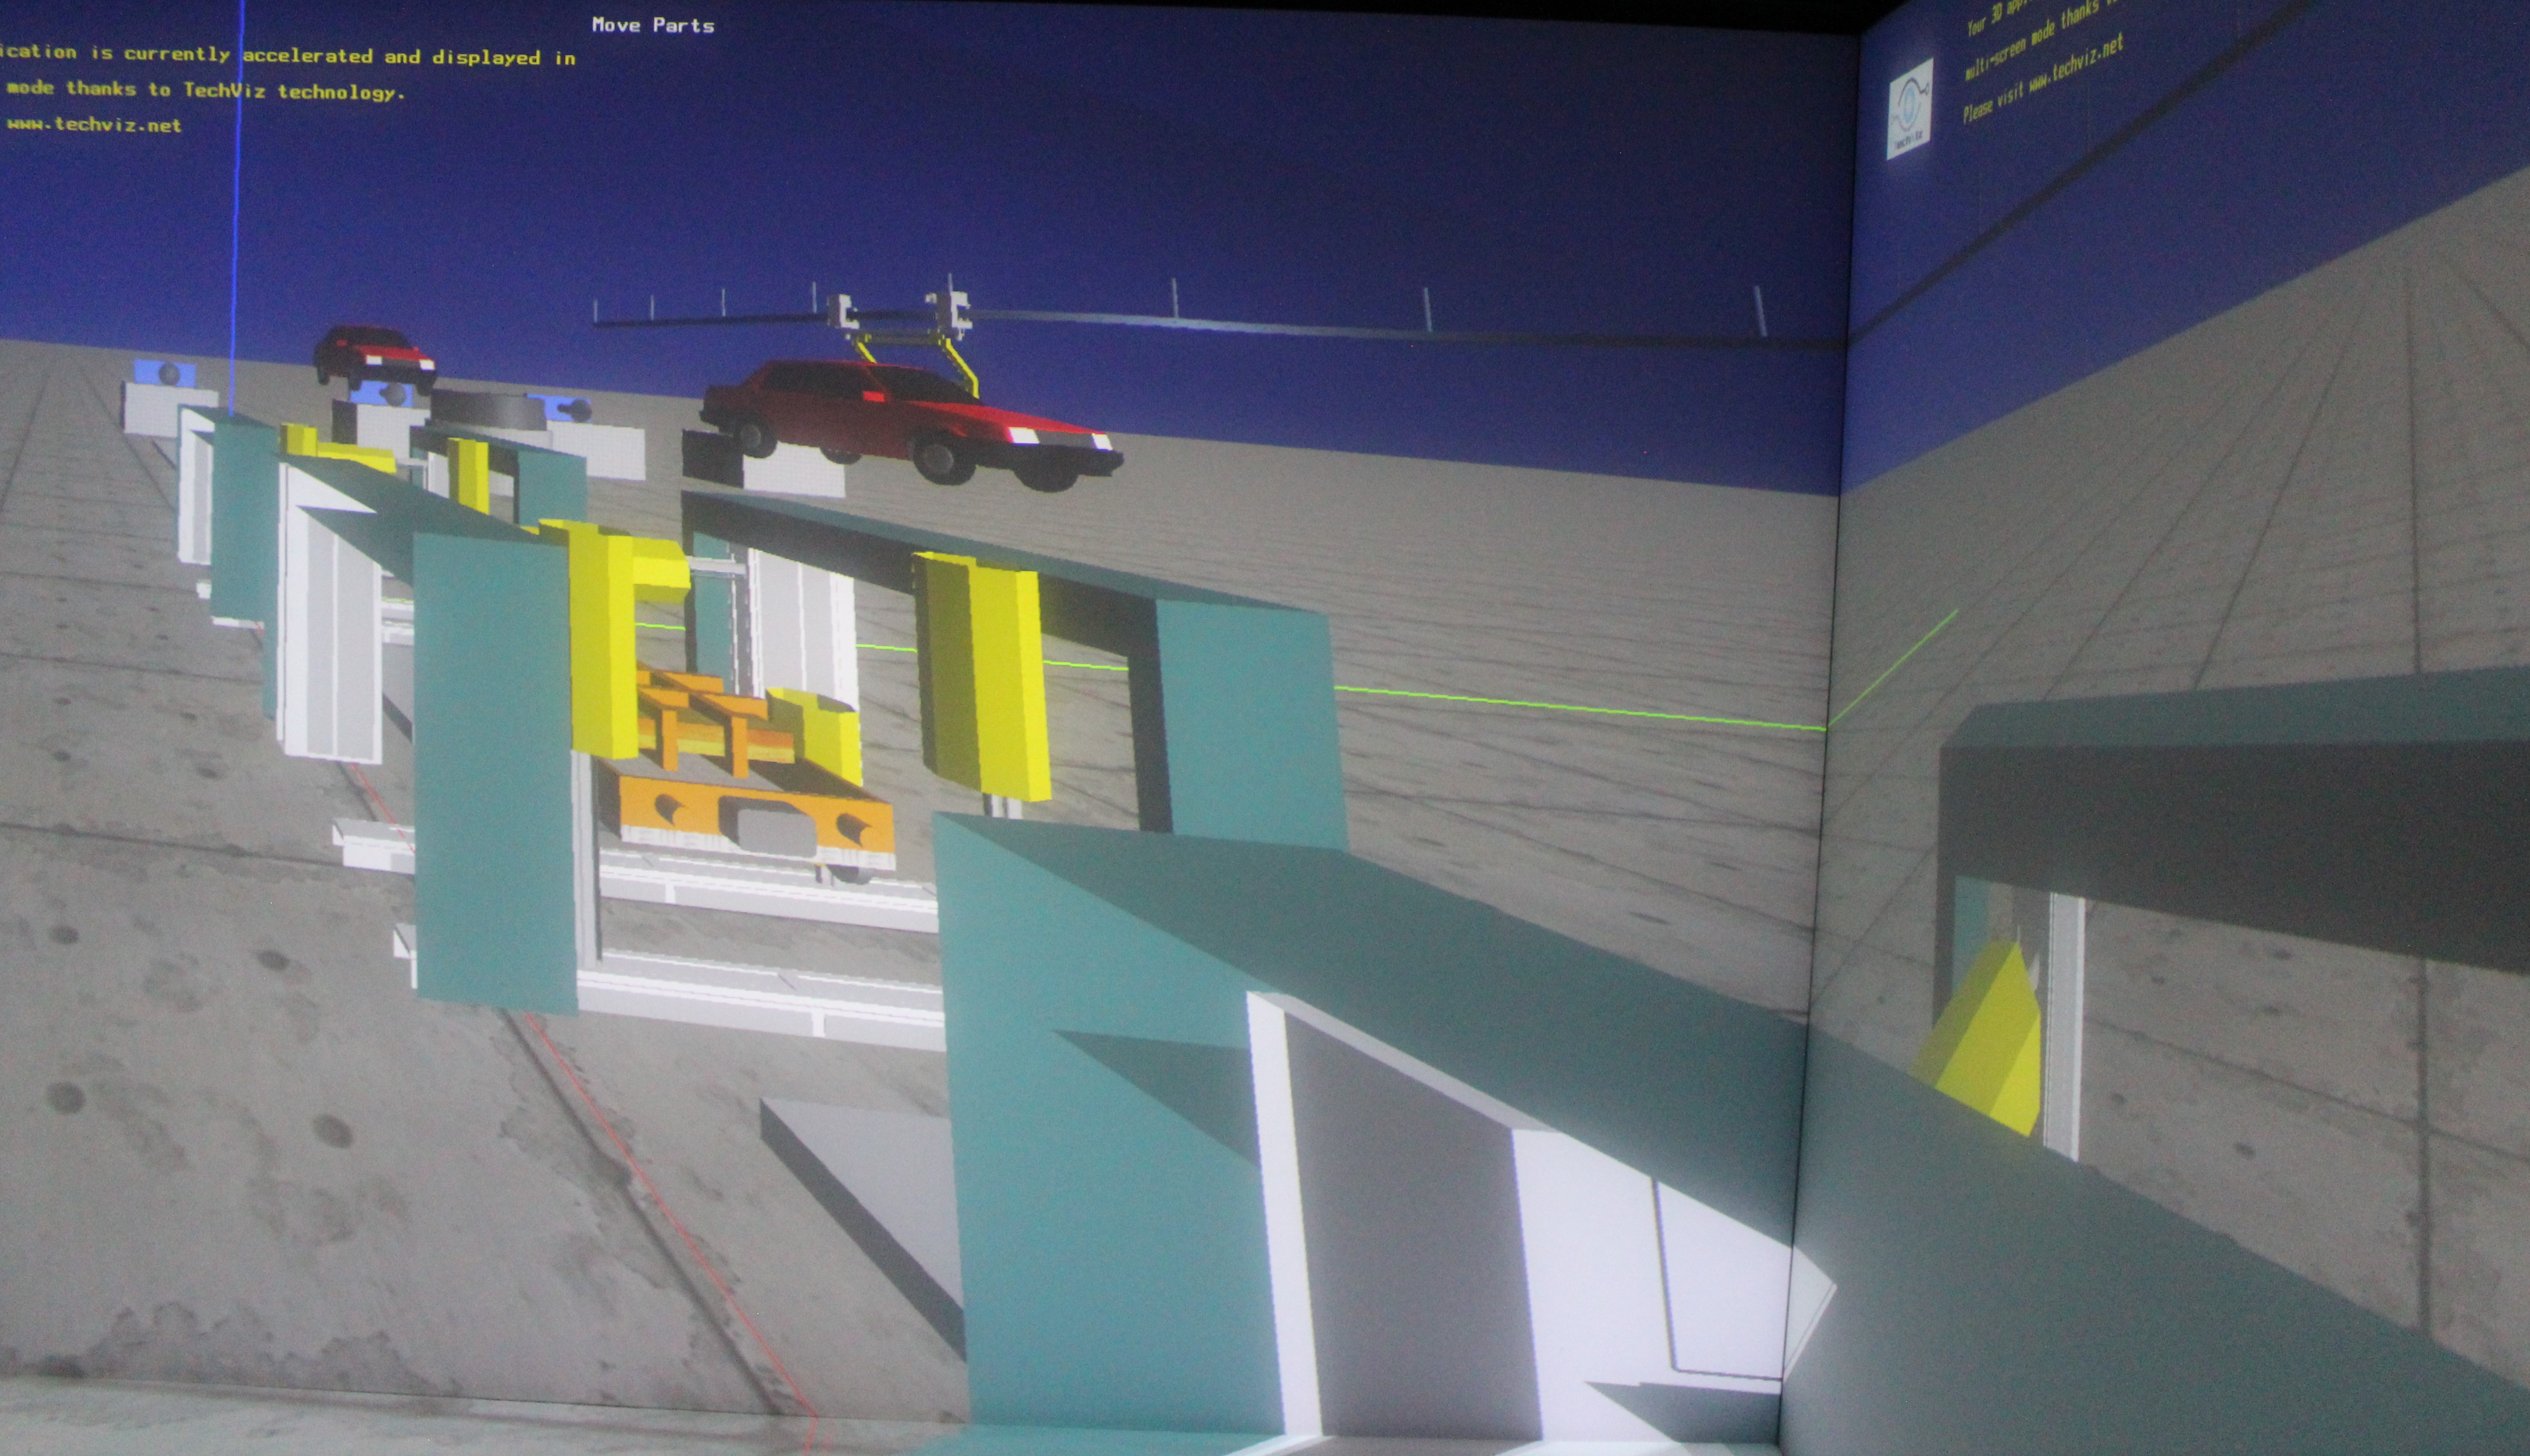 Use of Virtual Reality in Industry 4.0 manufacturing